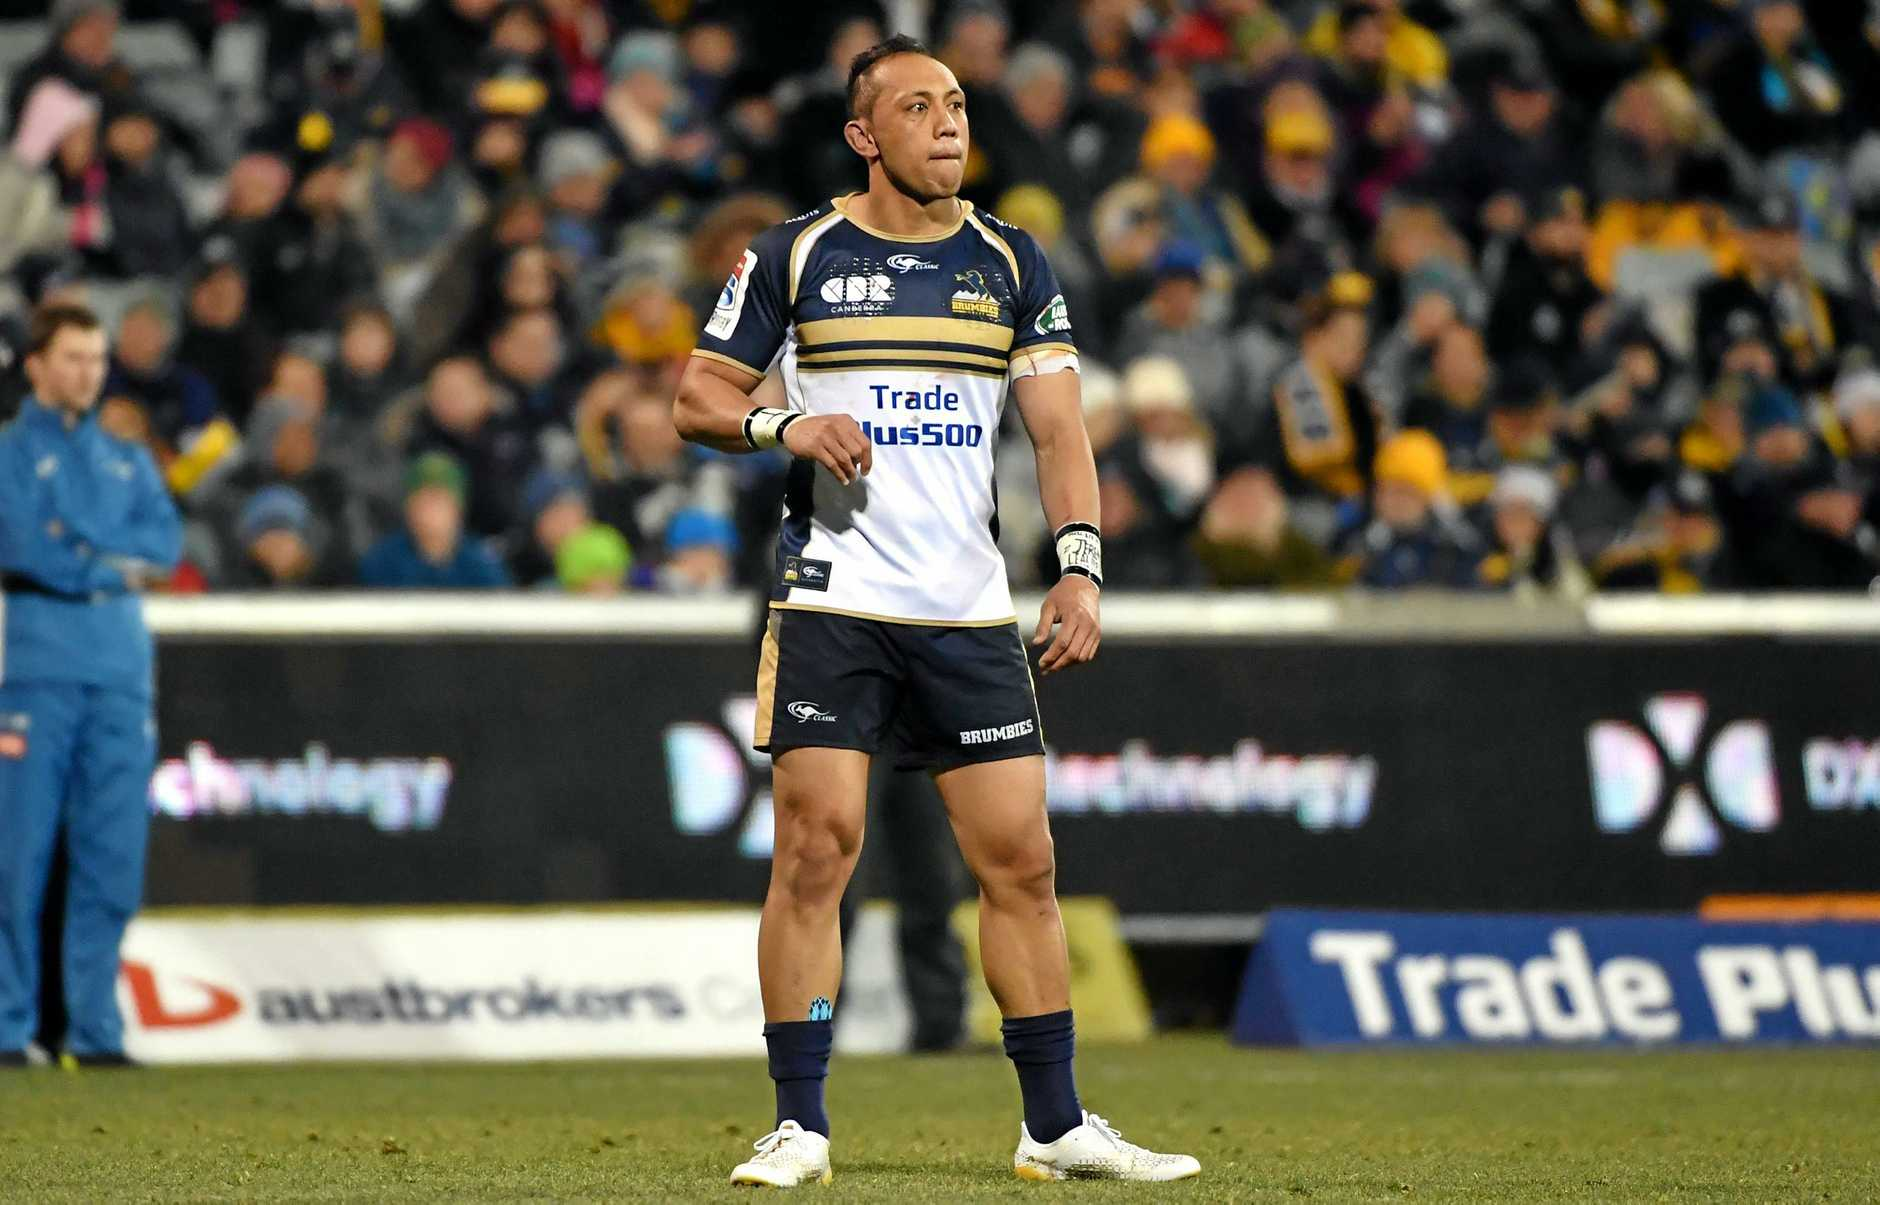 Christian Lealiifano will ine up for the Brumbies.